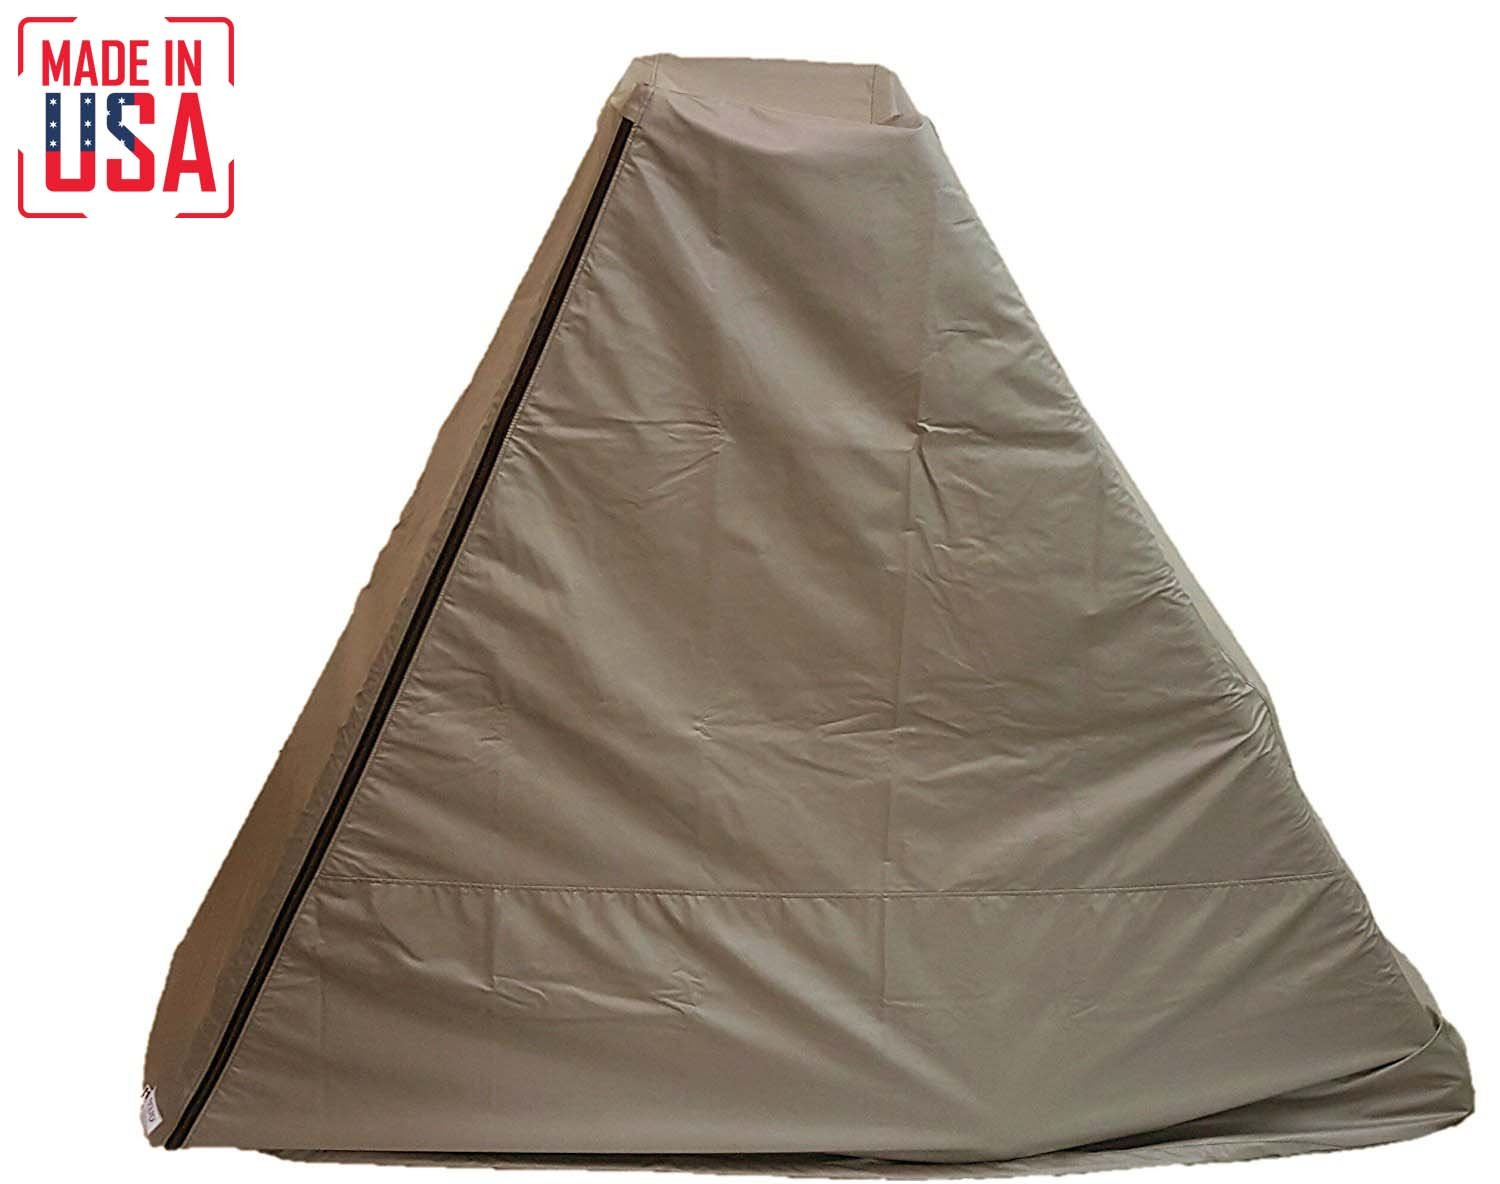 The Best Elliptical Machine Cover | Front Drive. Heavy Duty Fitness Equipment Protective Covers Ideal for Indoor or Outdoor Use. Made in USA with 3-Year Warranty. (Tan, Medium)